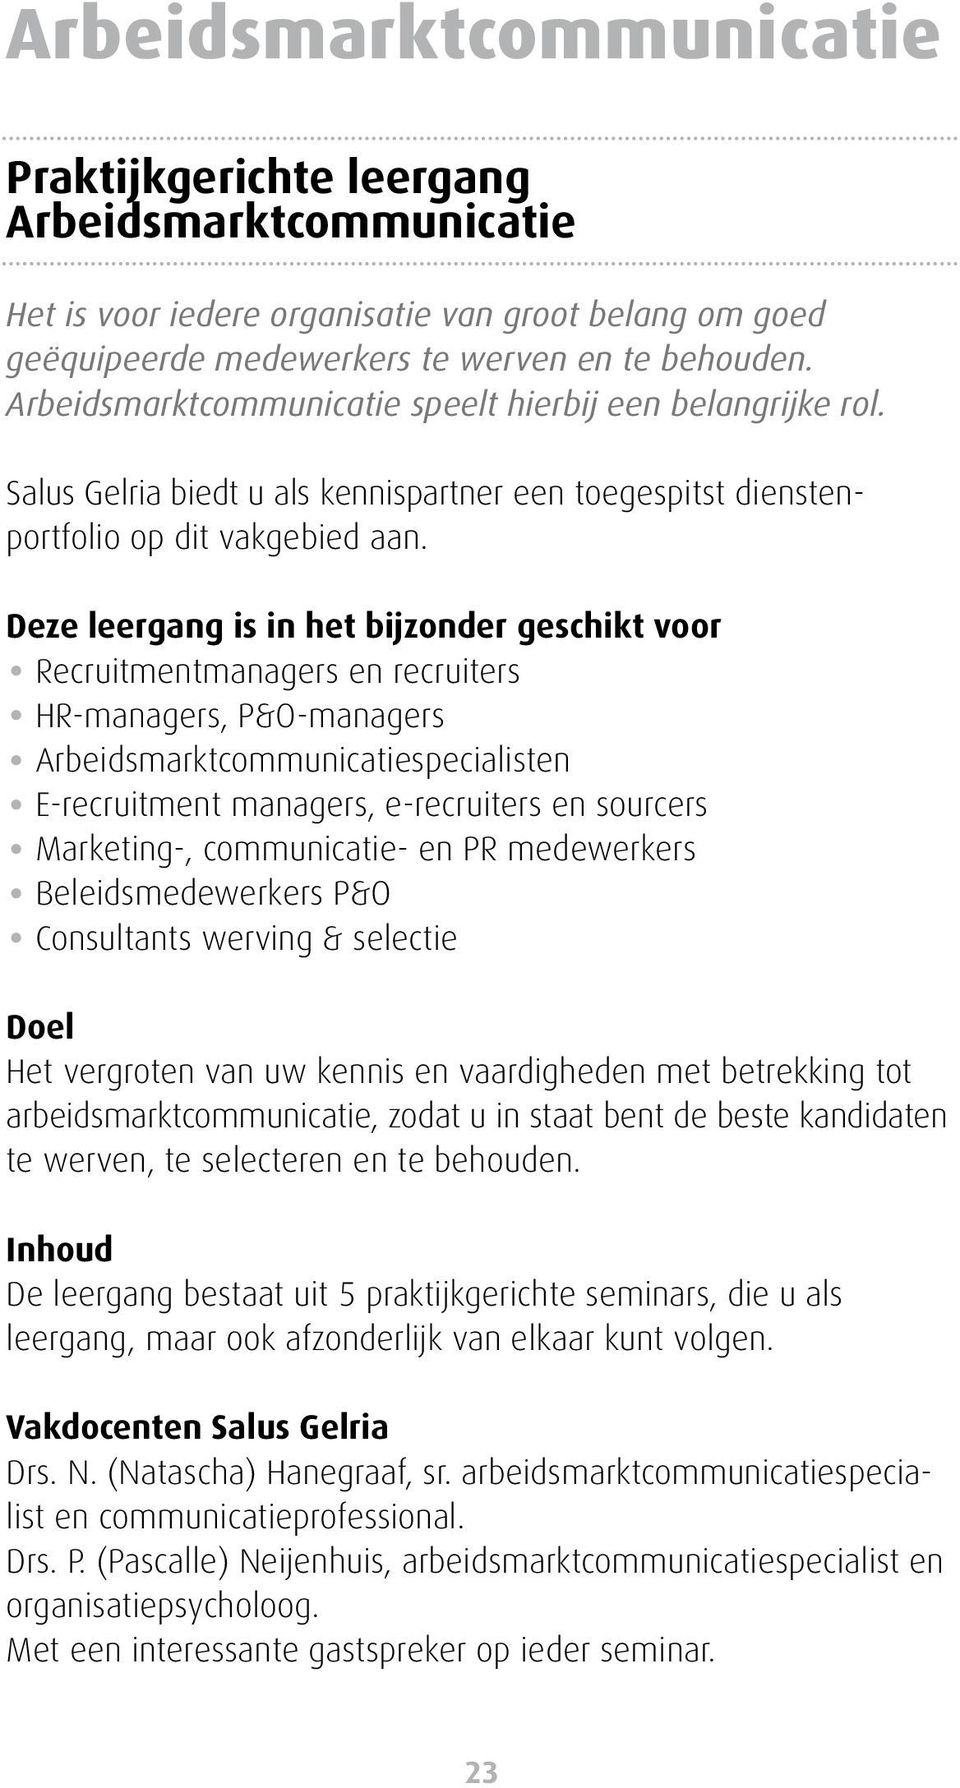 Deze leergang is in het bijzonder geschikt voor Recruitmentmanagers en recruiters HR-managers, P&O-managers Arbeidsmarktcommunicatiespecialisten E-recruitment managers, e-recruiters en sourcers